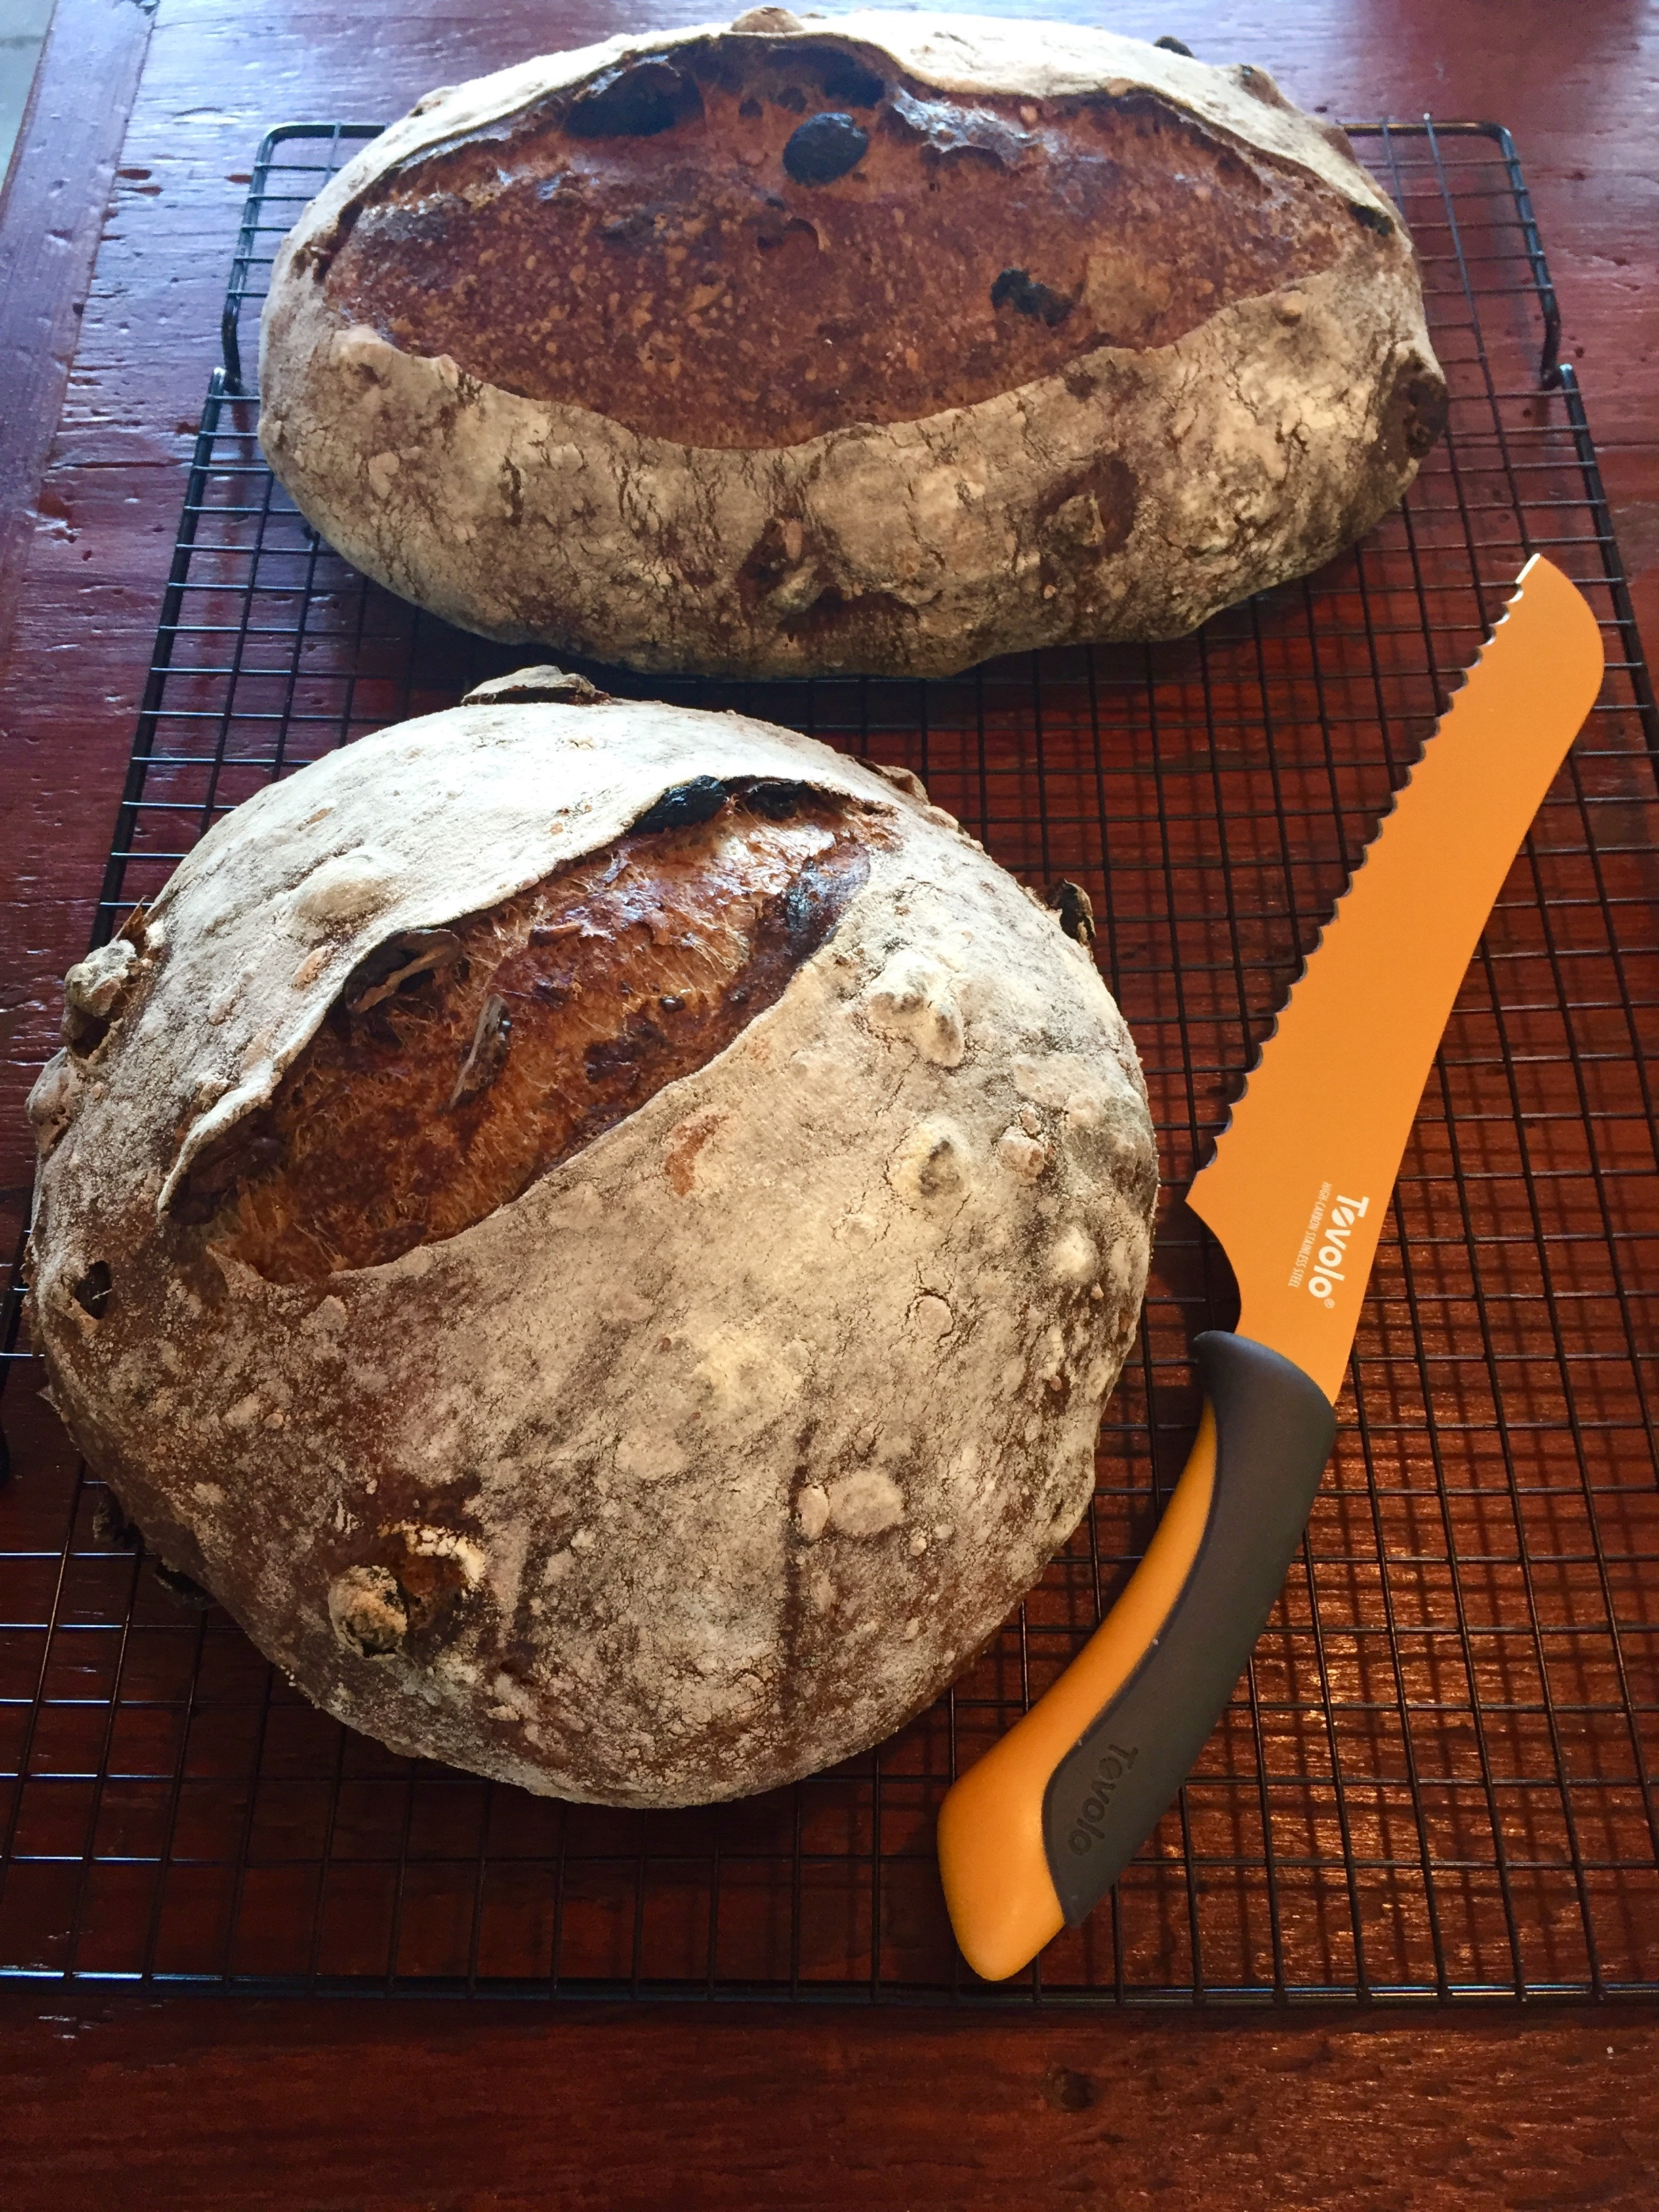 Best bread I ever made - Seeded Spelt Sourdough w/ Roasted Walnuts and Raisins - Reader Recipes ...